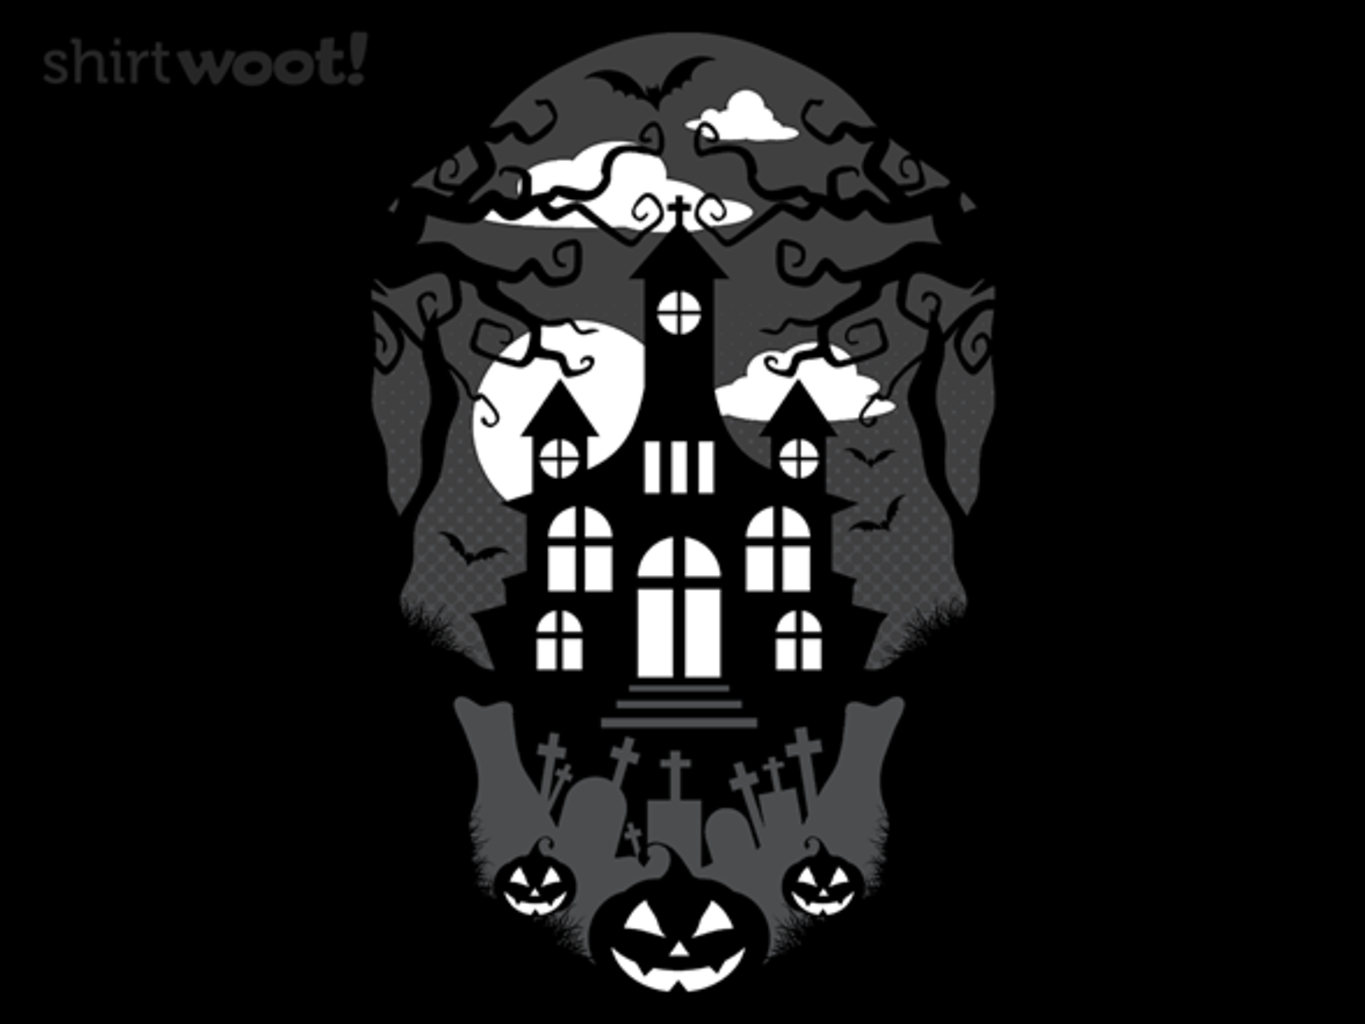 Woot!: Spooky House